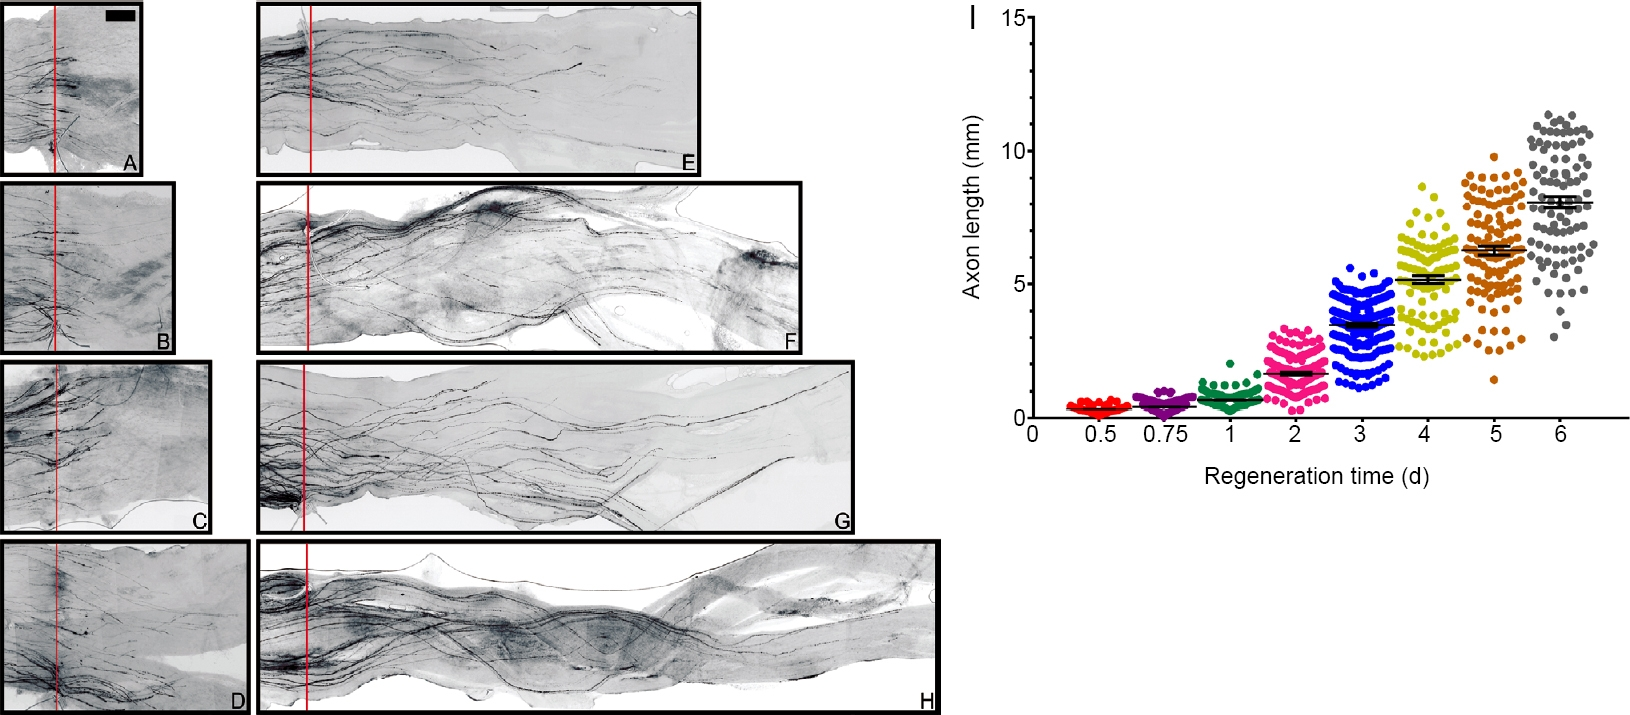 Representative images and quantification of regenerating sensory axons at different time points after nerve crush. Adapted from Figure 1 of Gao et al. 2020